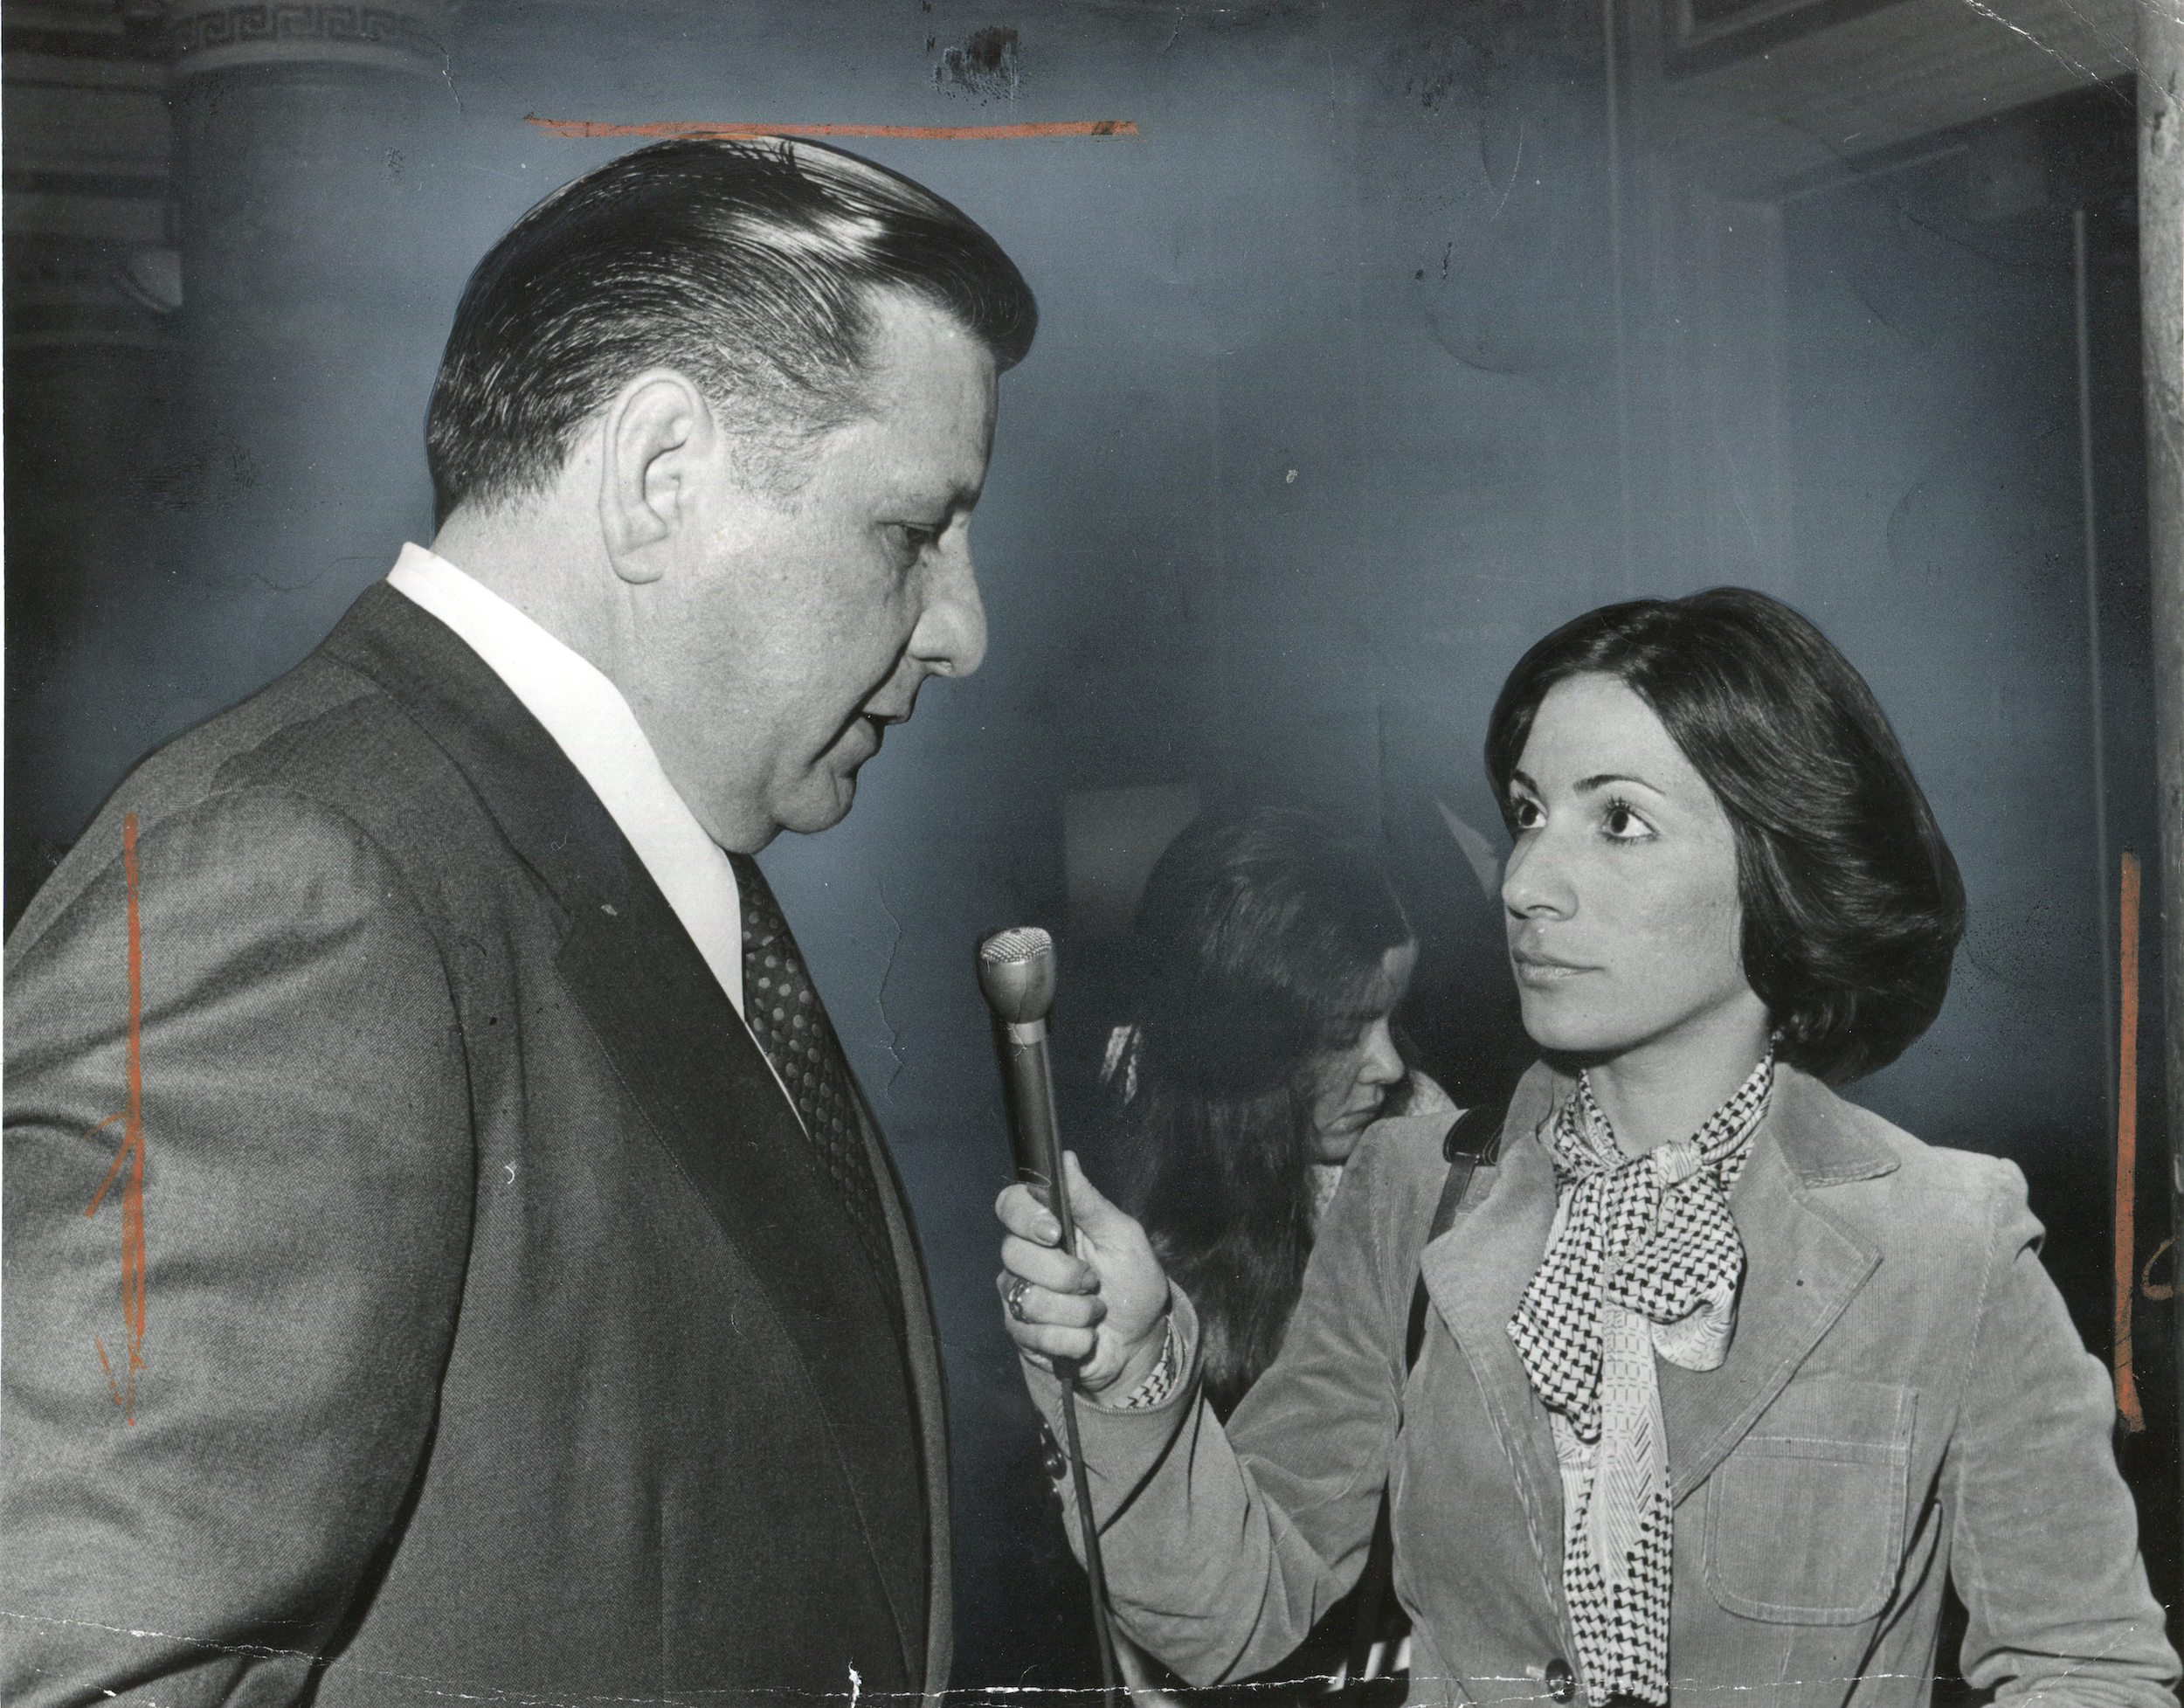 Andrea Mitchell interviewing former Philadelphia Mayor Frank Rizzo.